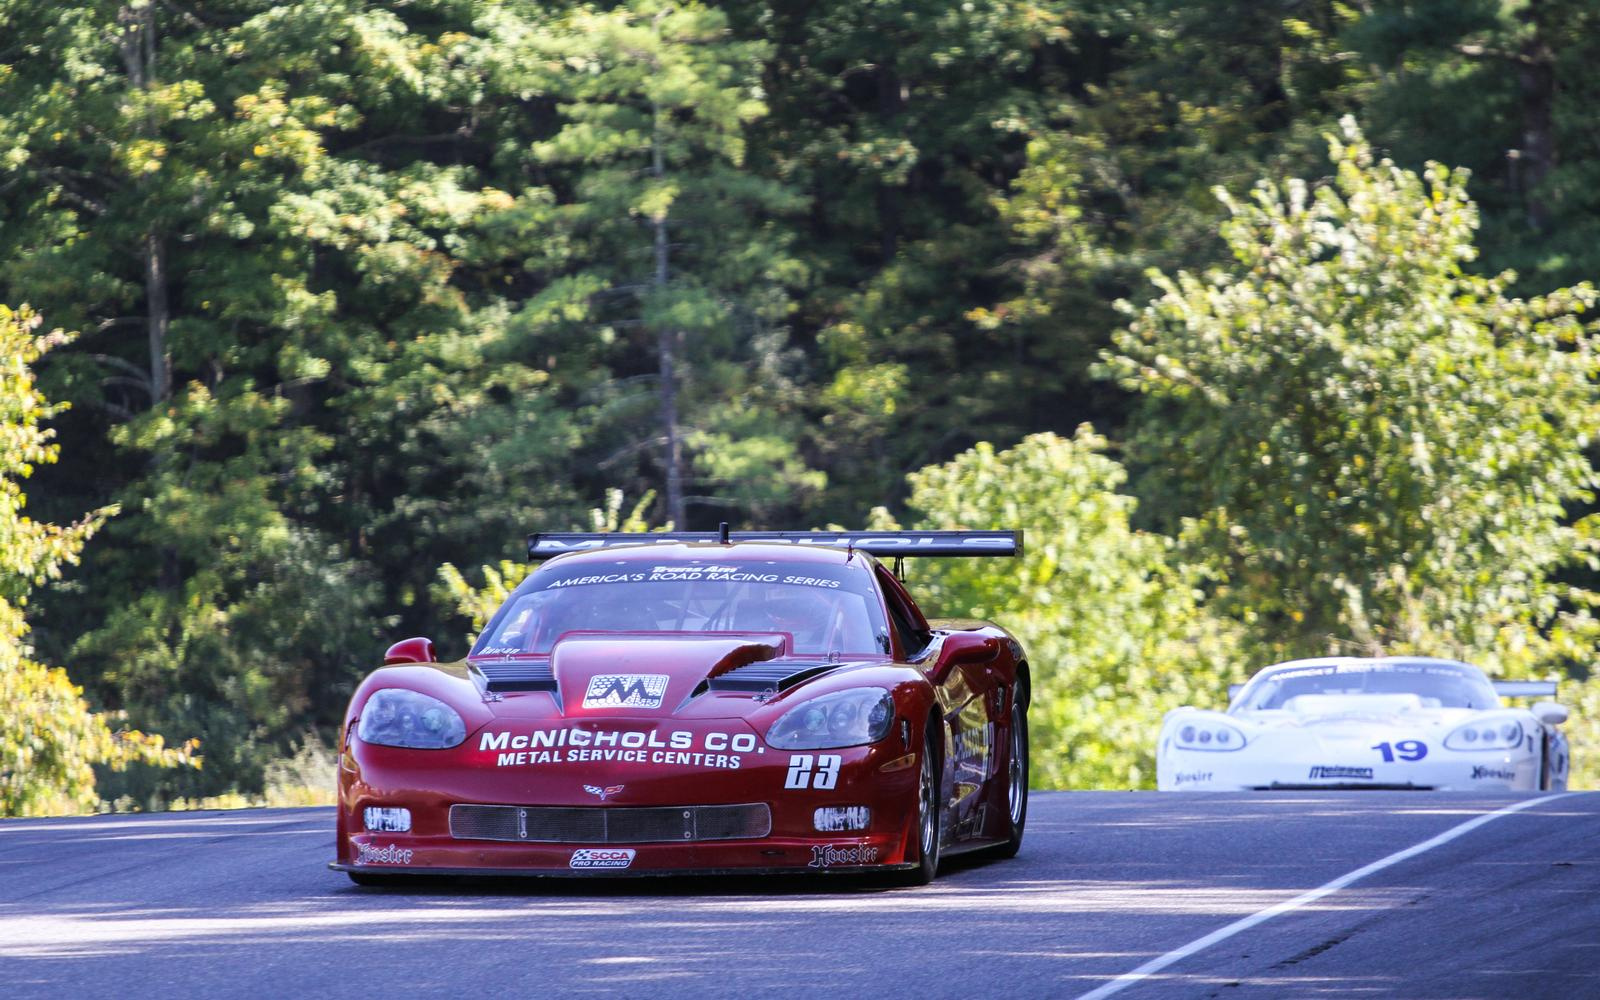 Ruman Eyeing another Win at Lime Rock Park this Weekend